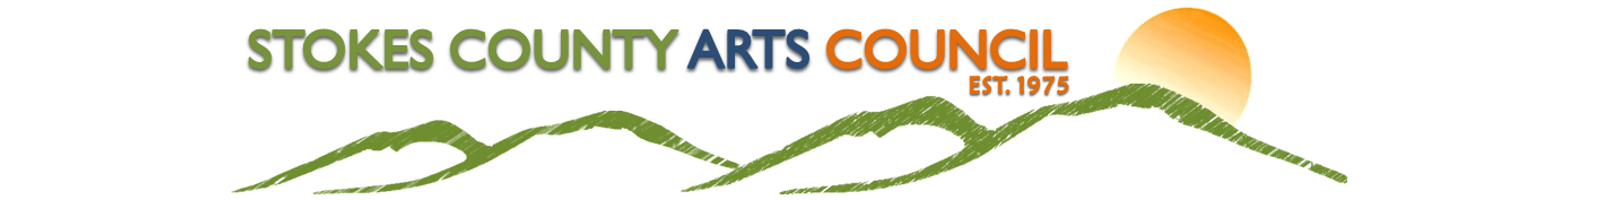 Stokes County Arts Council Residency @ Stokes County Arts Council | Danbury | North Carolina | United States